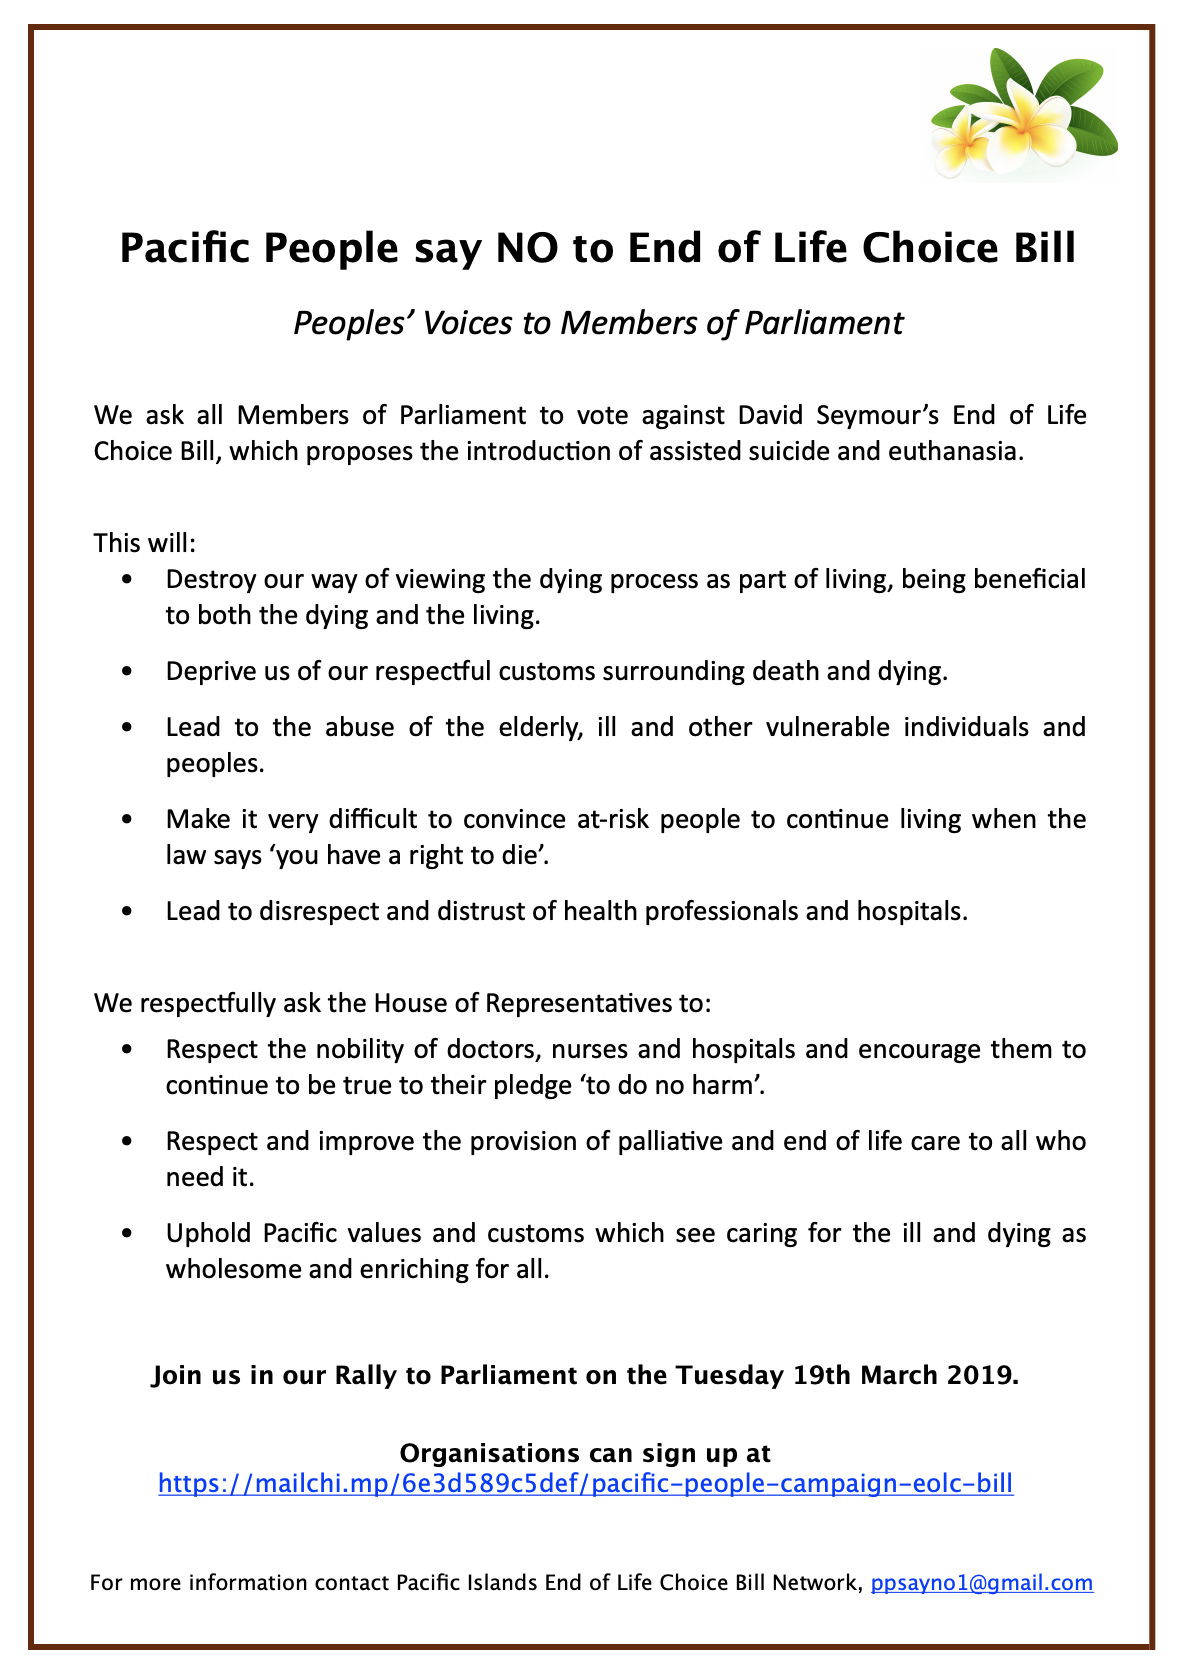 End of Life Choice Bill Rally.png